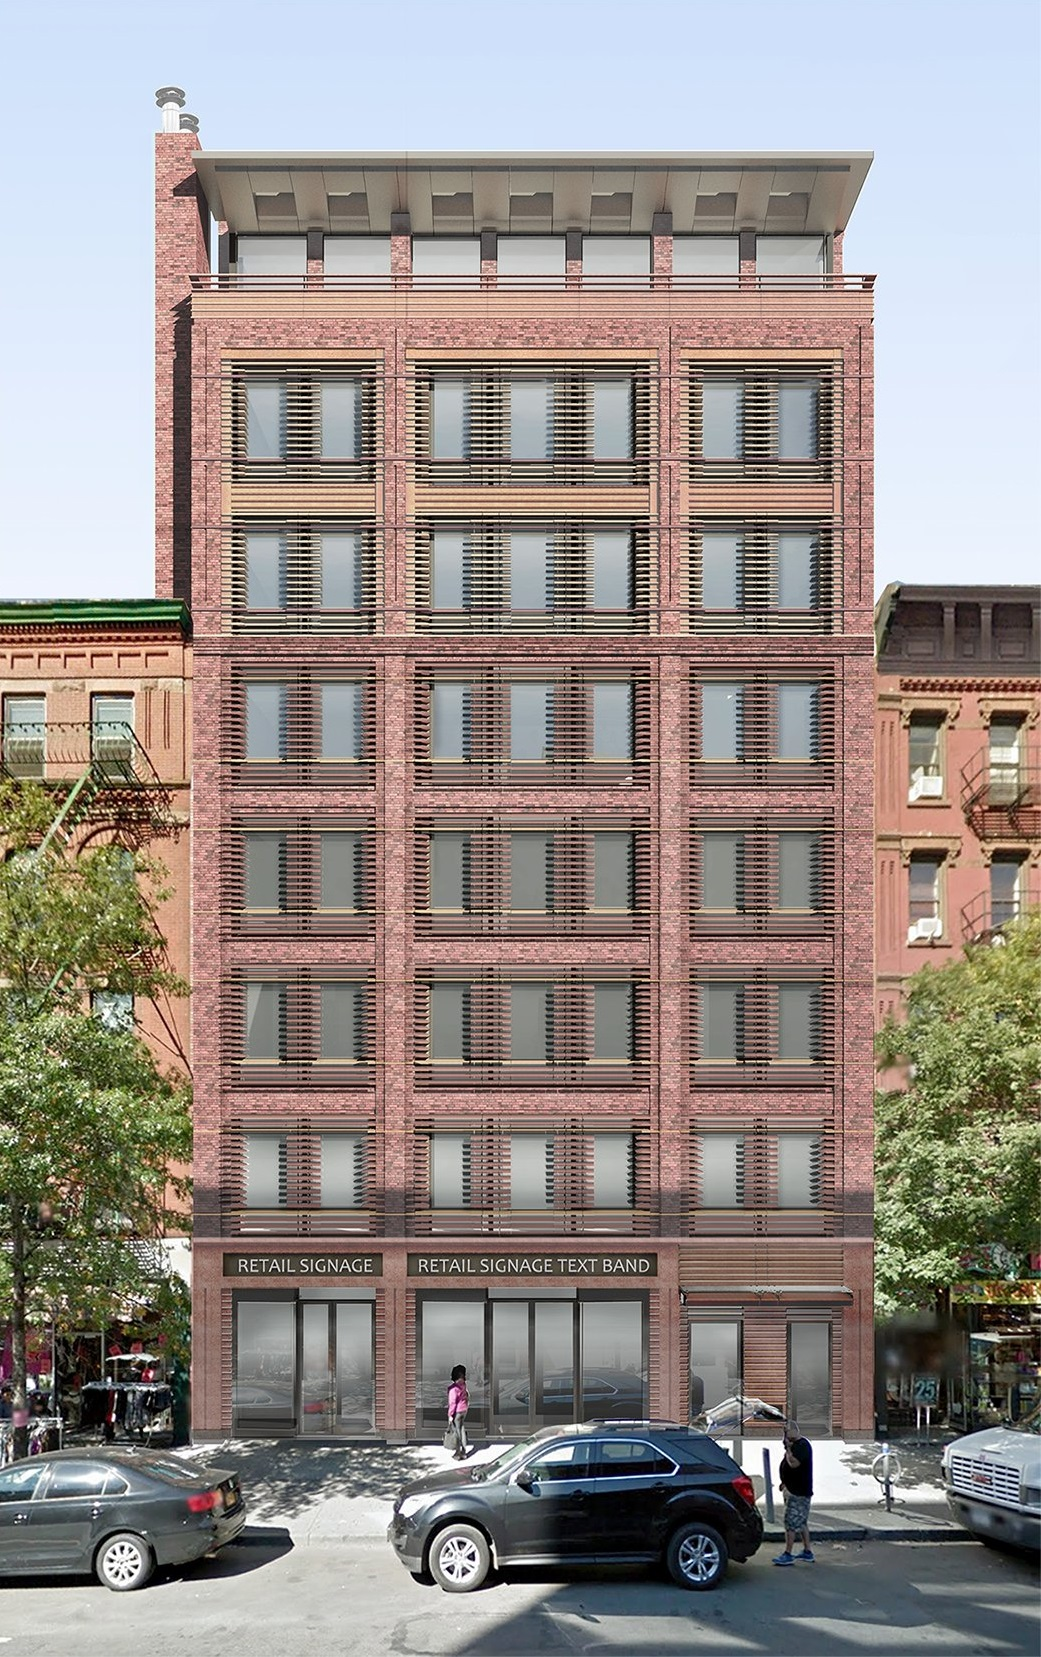 GEA Consulting Engineers GEA Projects in the News: 466 Columbus Avenue Mixed Use Building on the Rise!